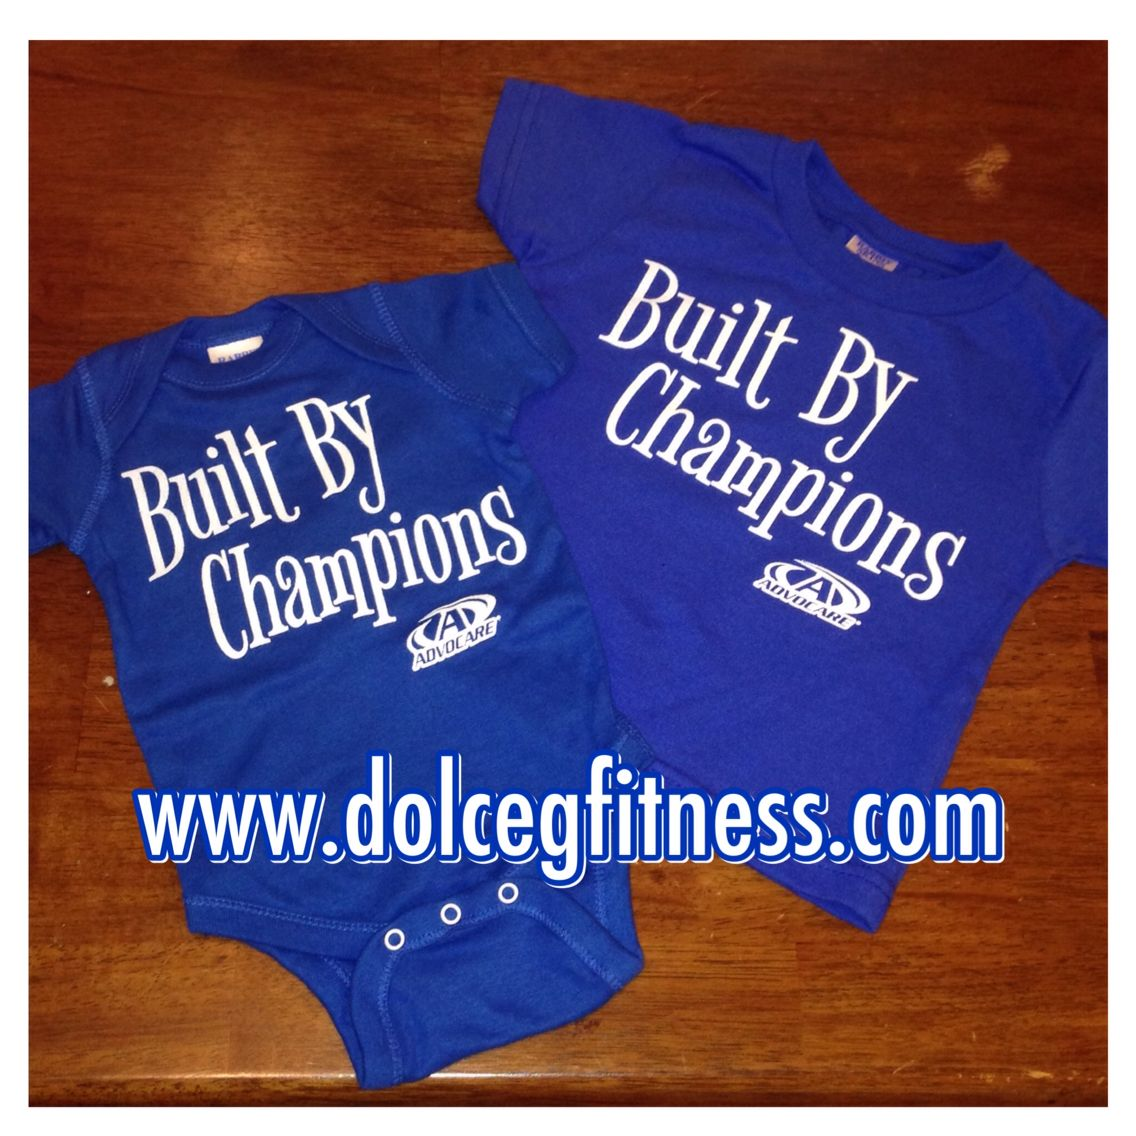 Advocare! Www.dolcegfitness.com NB-4T! While supplies last!